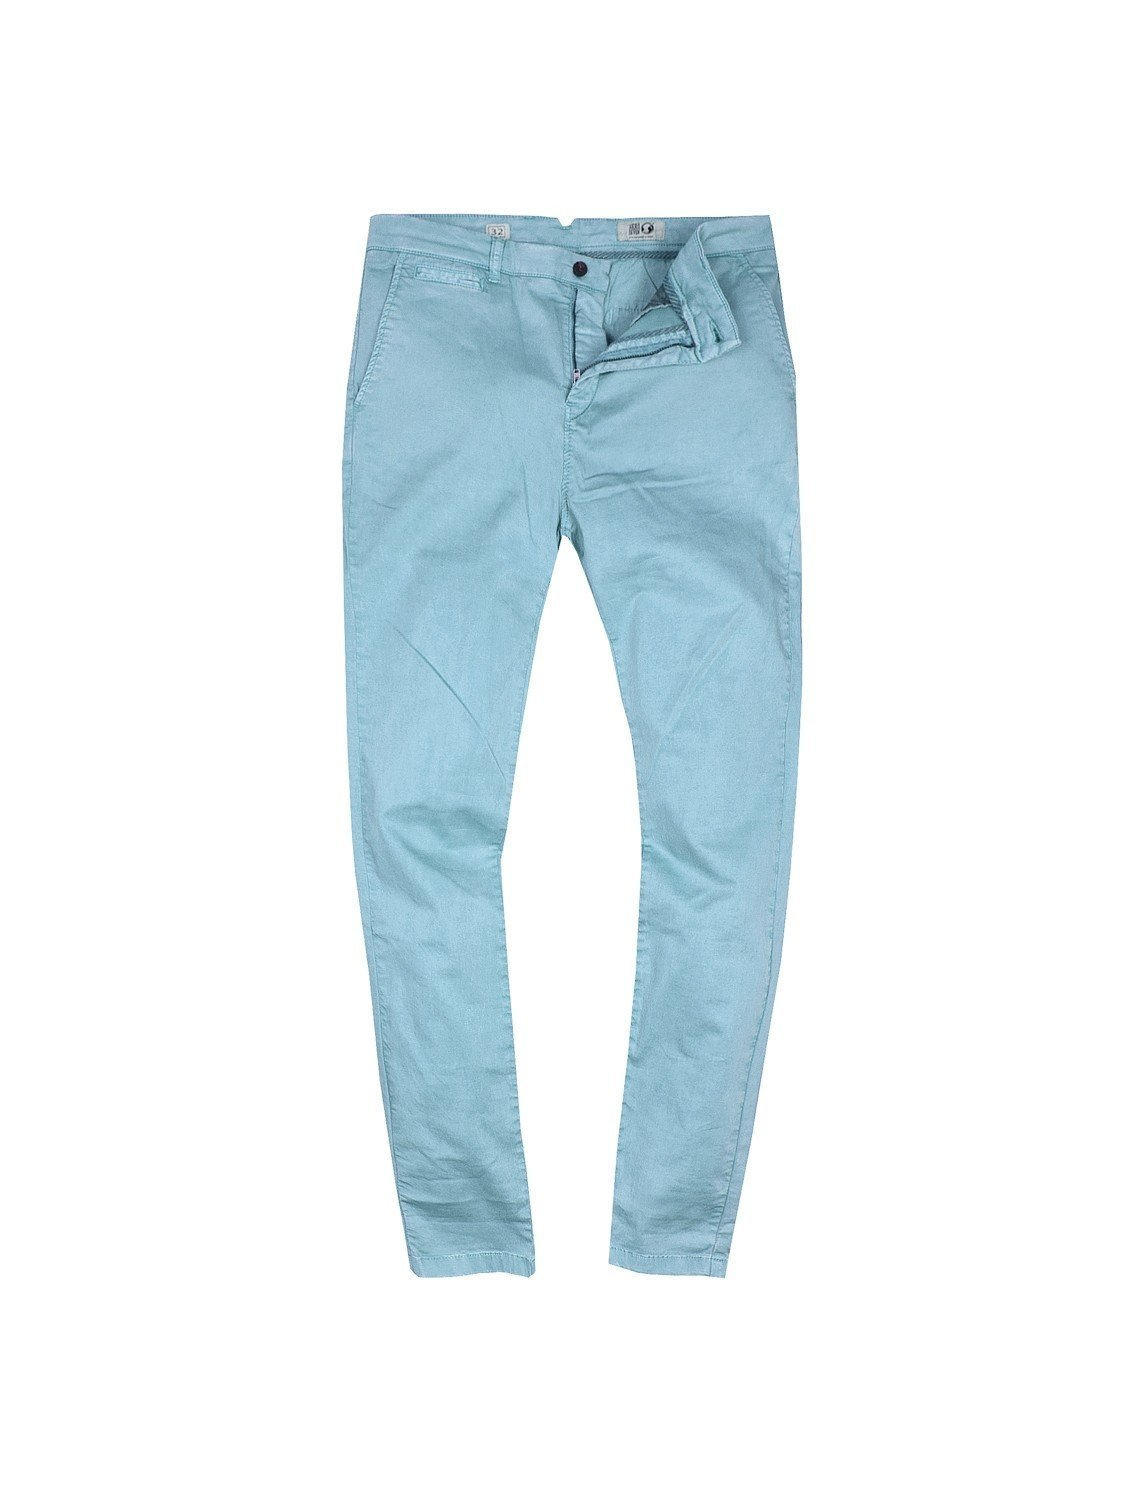 Chino HERO SEVEN bleu ciel hero7-S18 chino ice blue